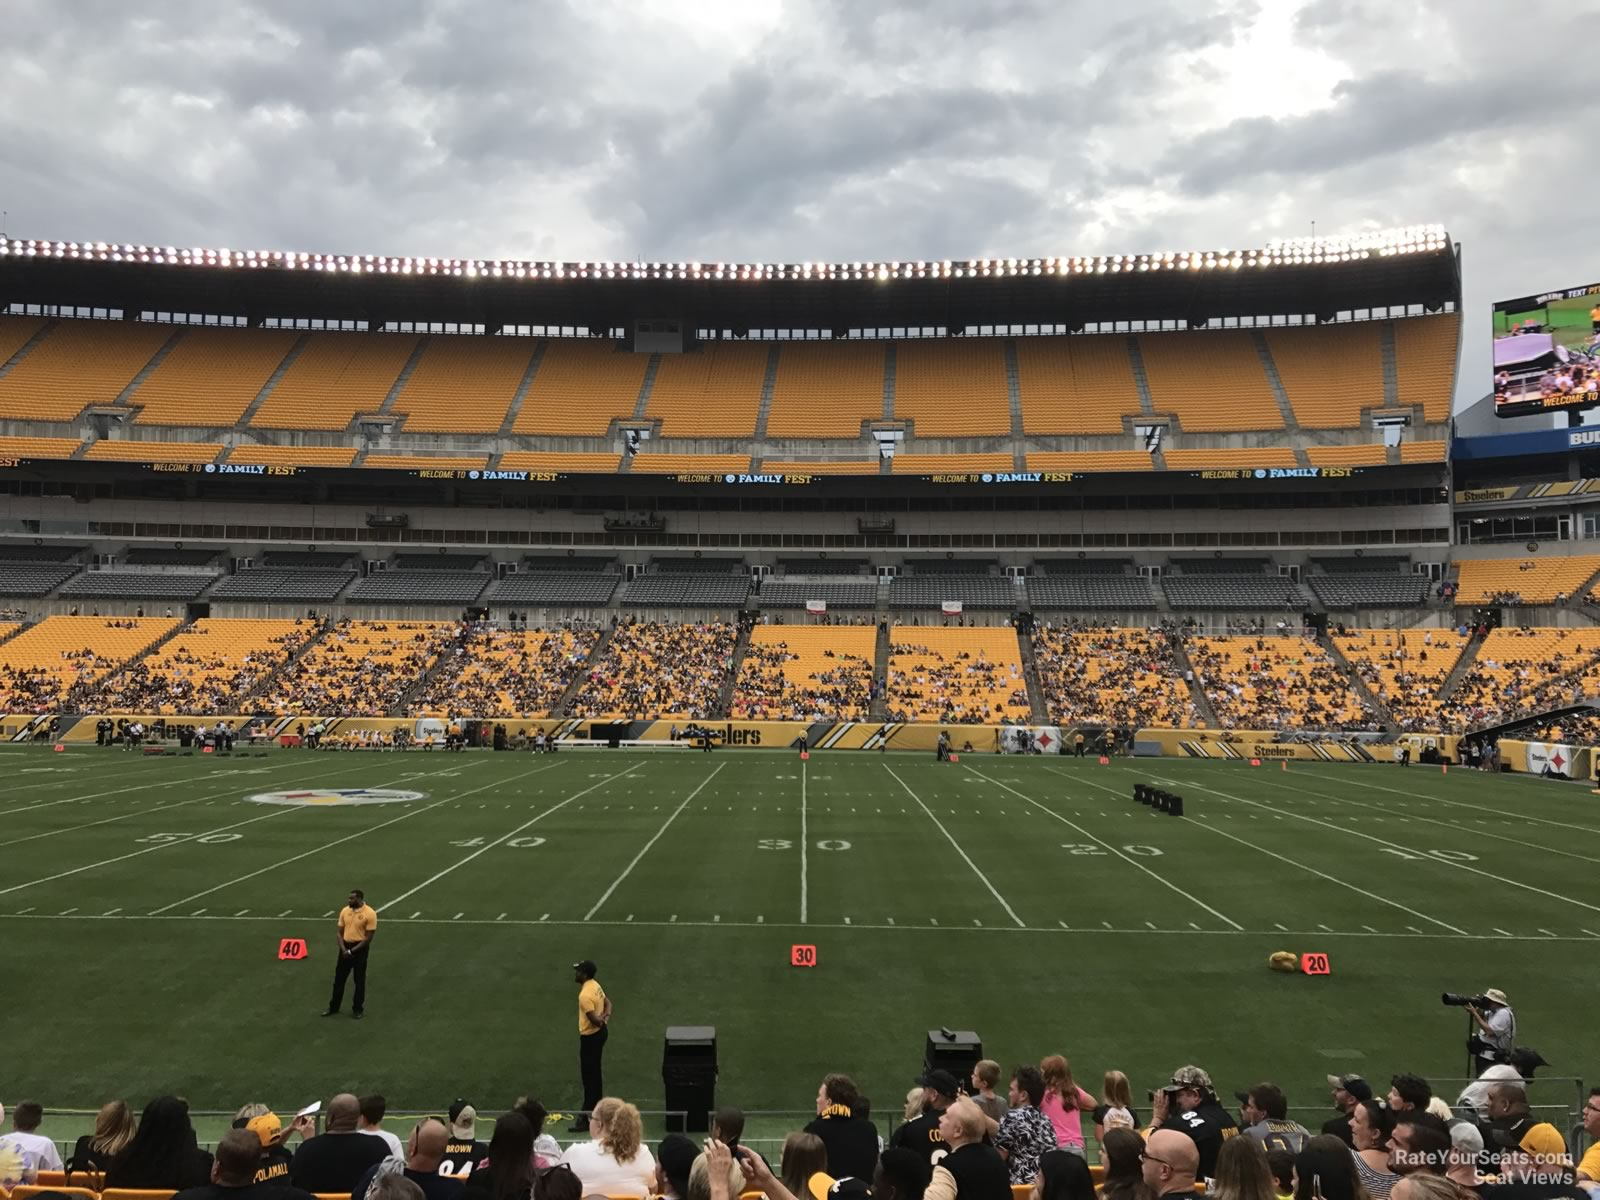 Bermuda's War Veterans Pictures of heinz field pittsburgh pa